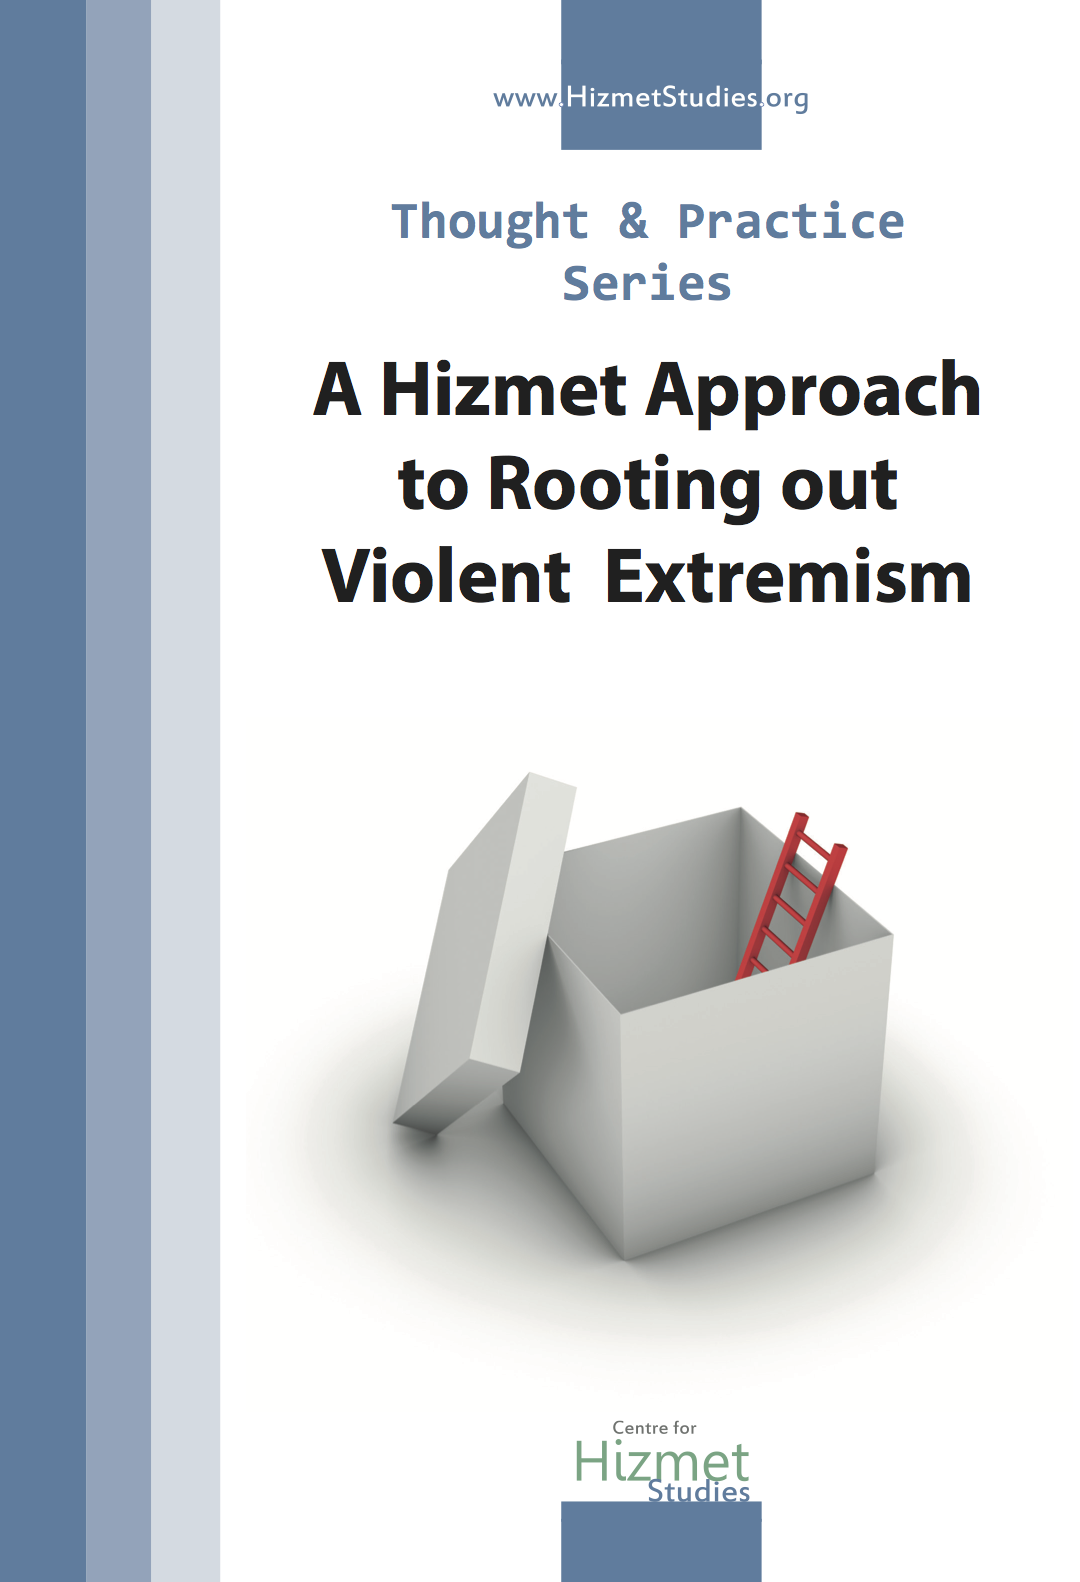 A Hizmet Approach to Rooting out Violent Extremism